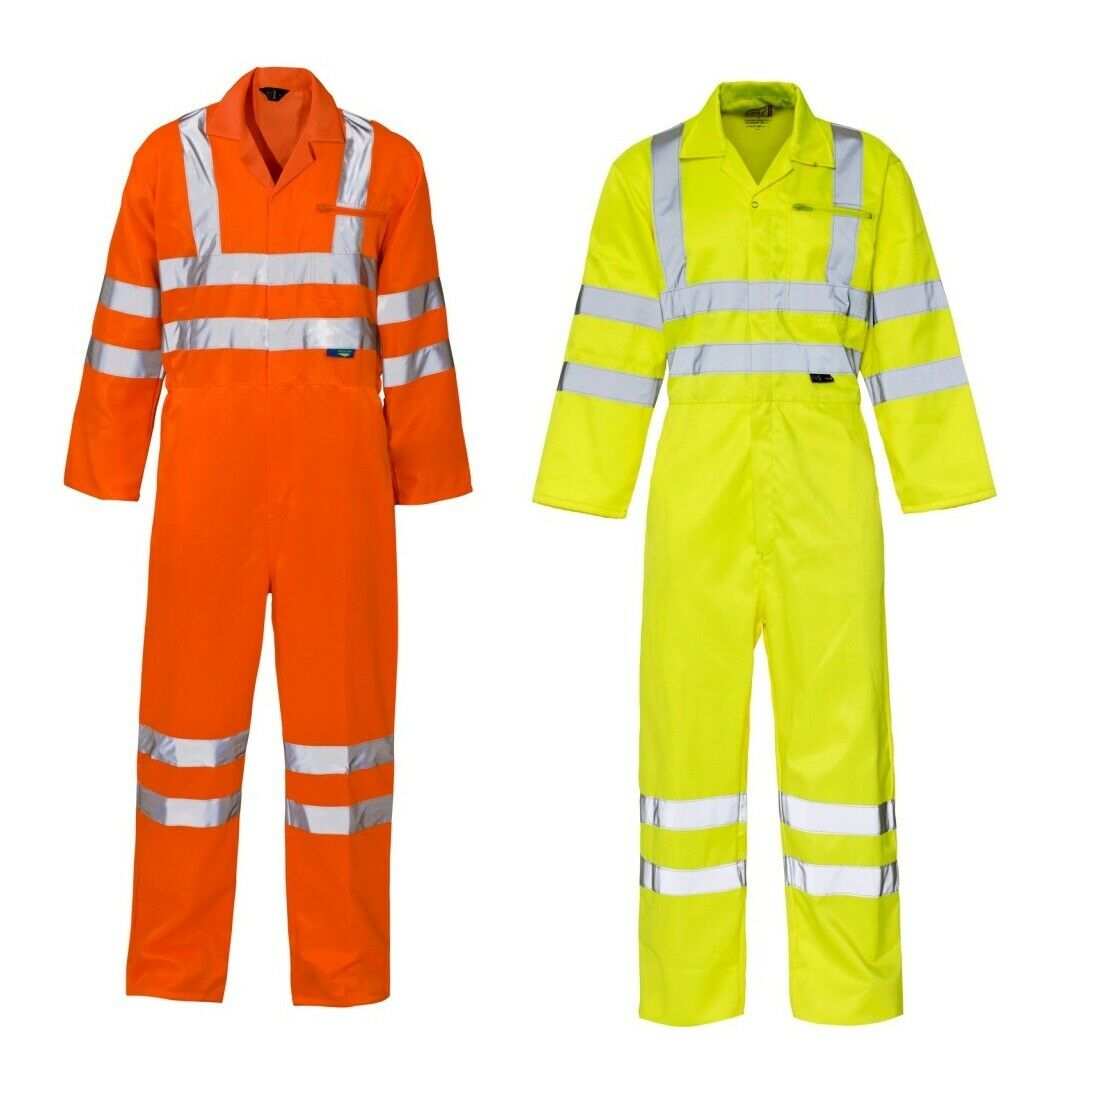 Details about Hi vis Viz Safety Workwear Coverall Overall Boiler Suit Full Body Protection